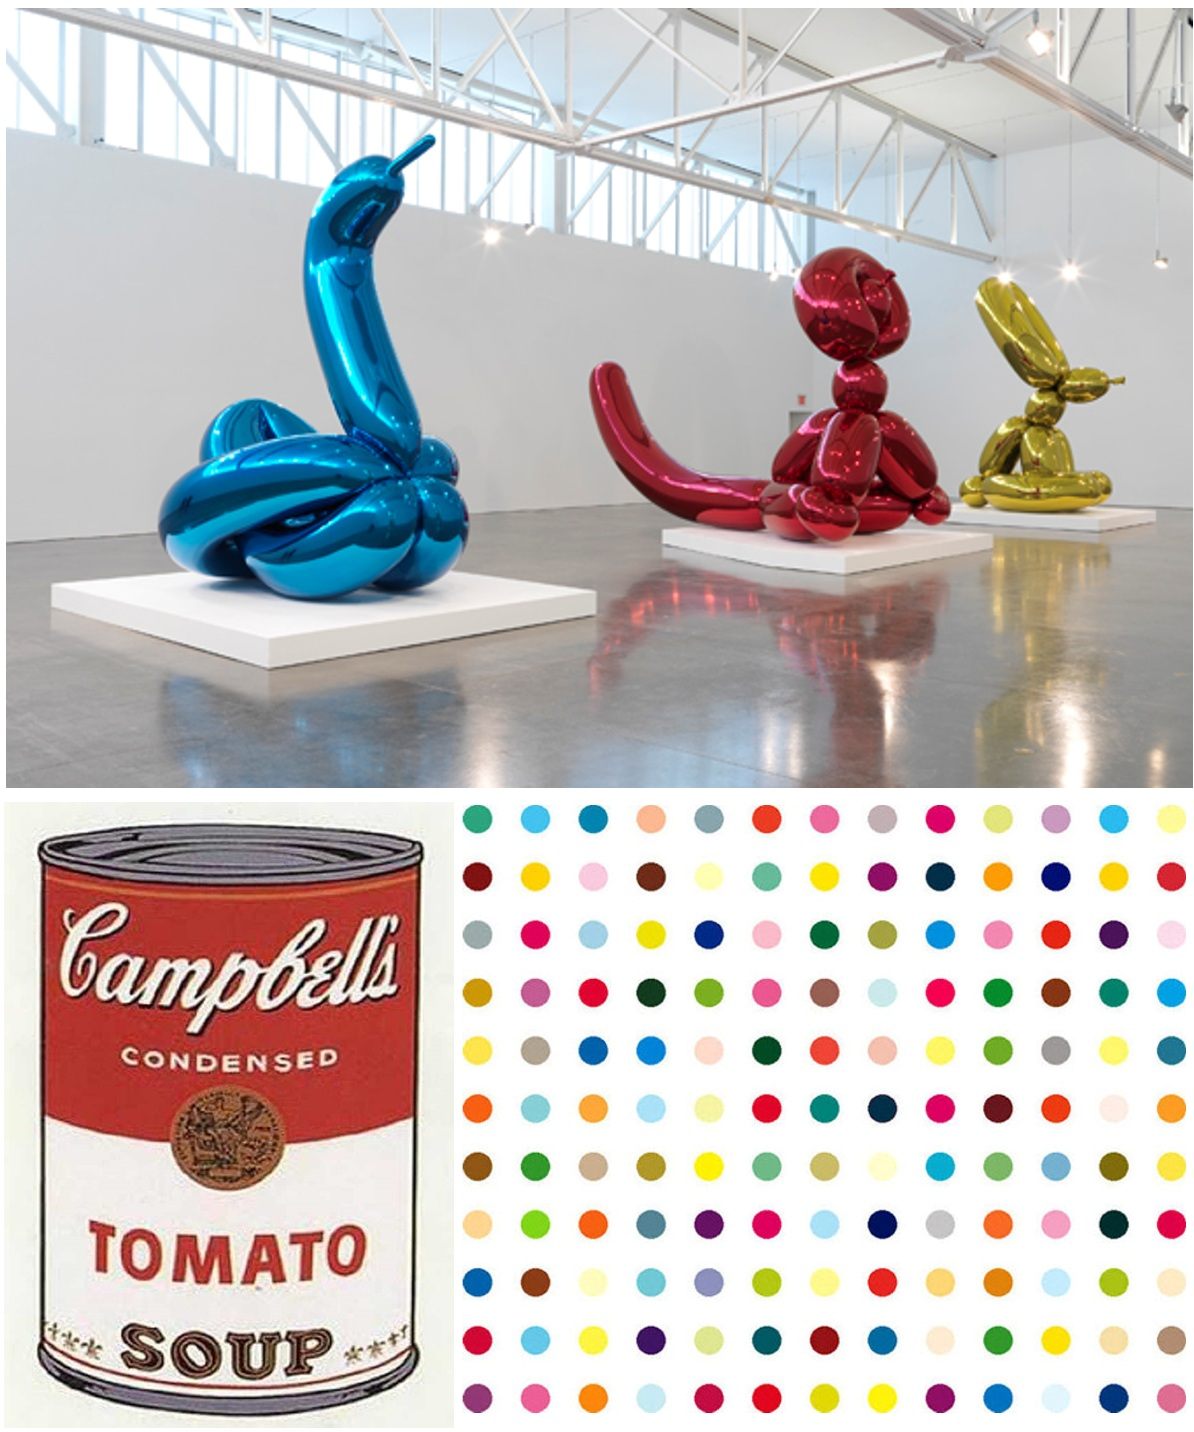 CYNICAL ART Clockwise from upper left: Koons, Hirst, Warhol.